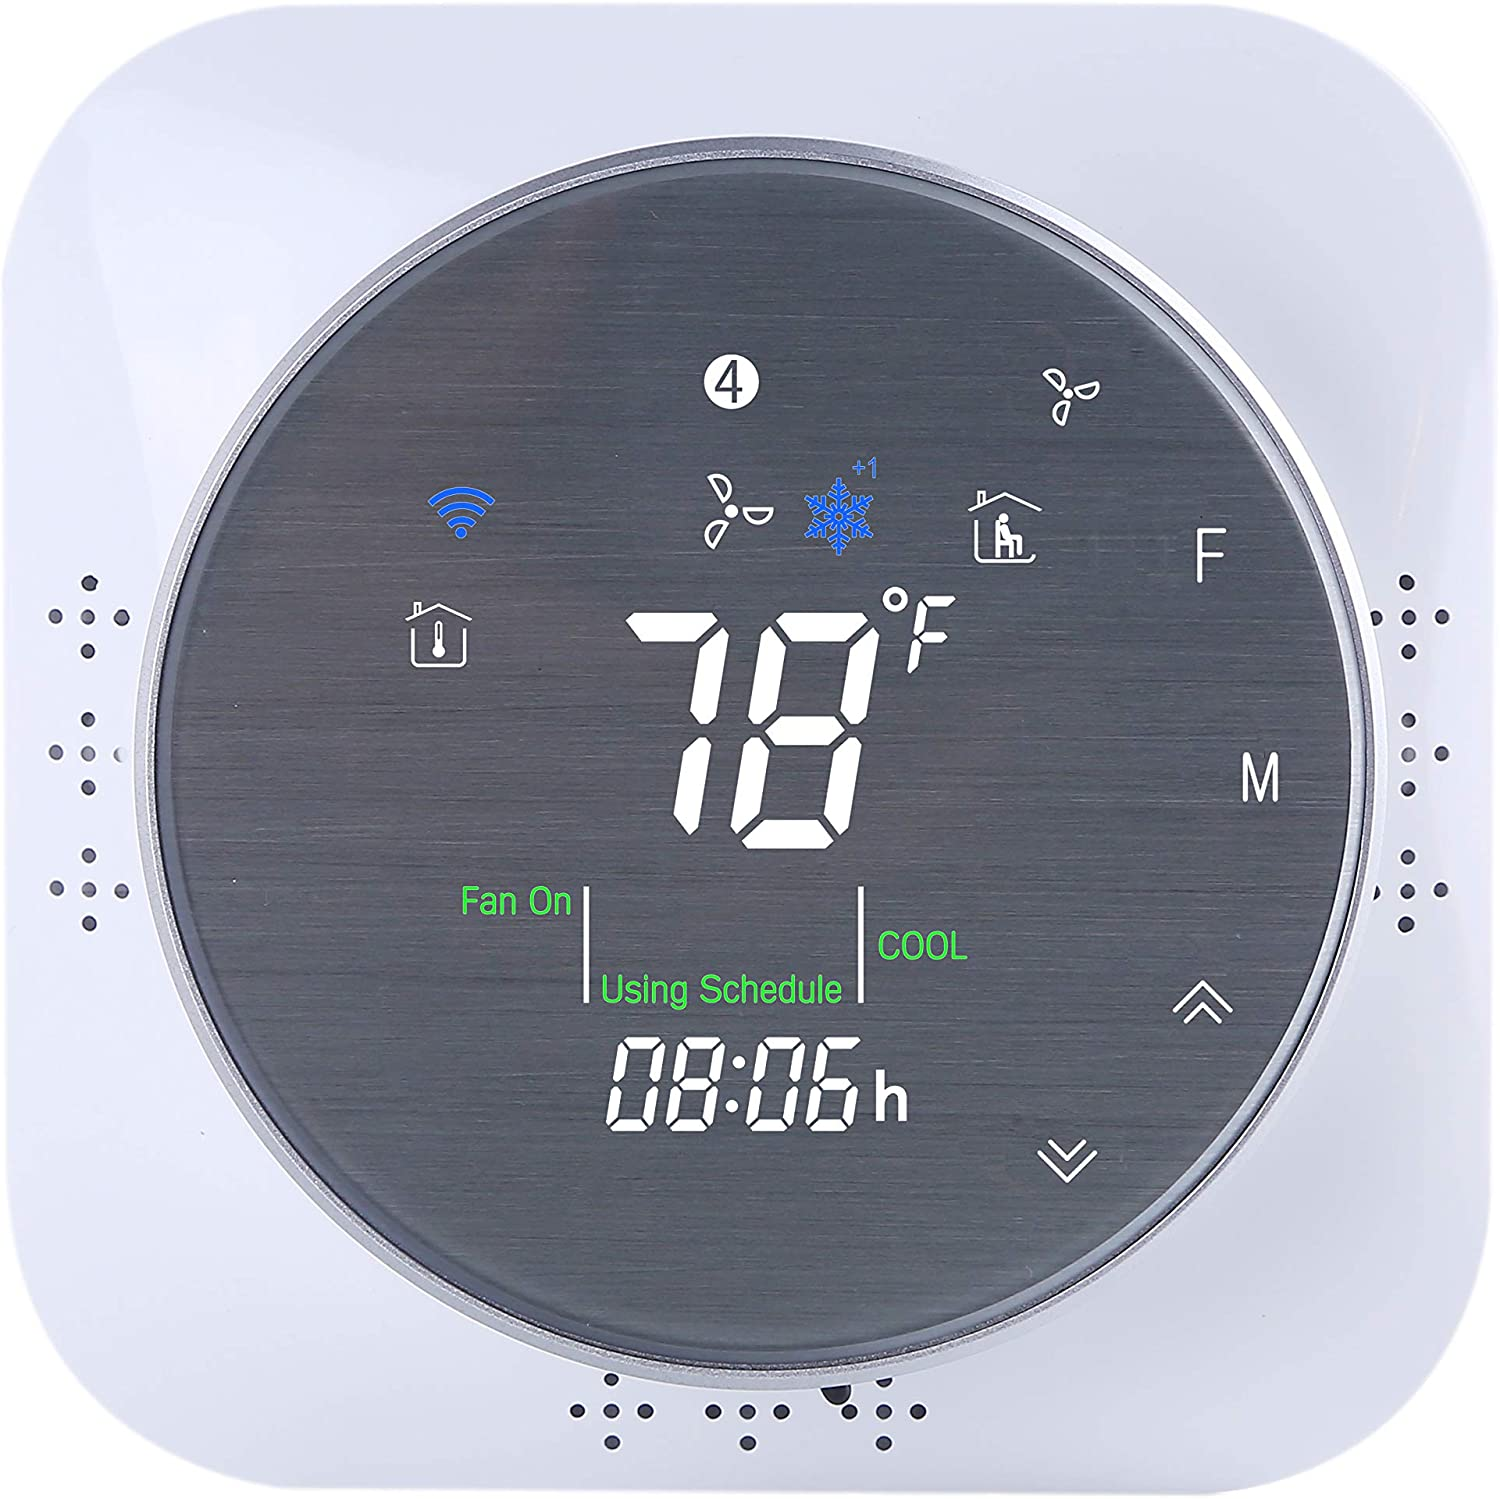 Updated Version Wifi Smart Thermostat with Touch Screen,Air Conditioner Thermostat with Frosted Display,Lockable,Real-time Local Meteorological Data,Compatible with Alexa,Google Assistant (BHT-6000)